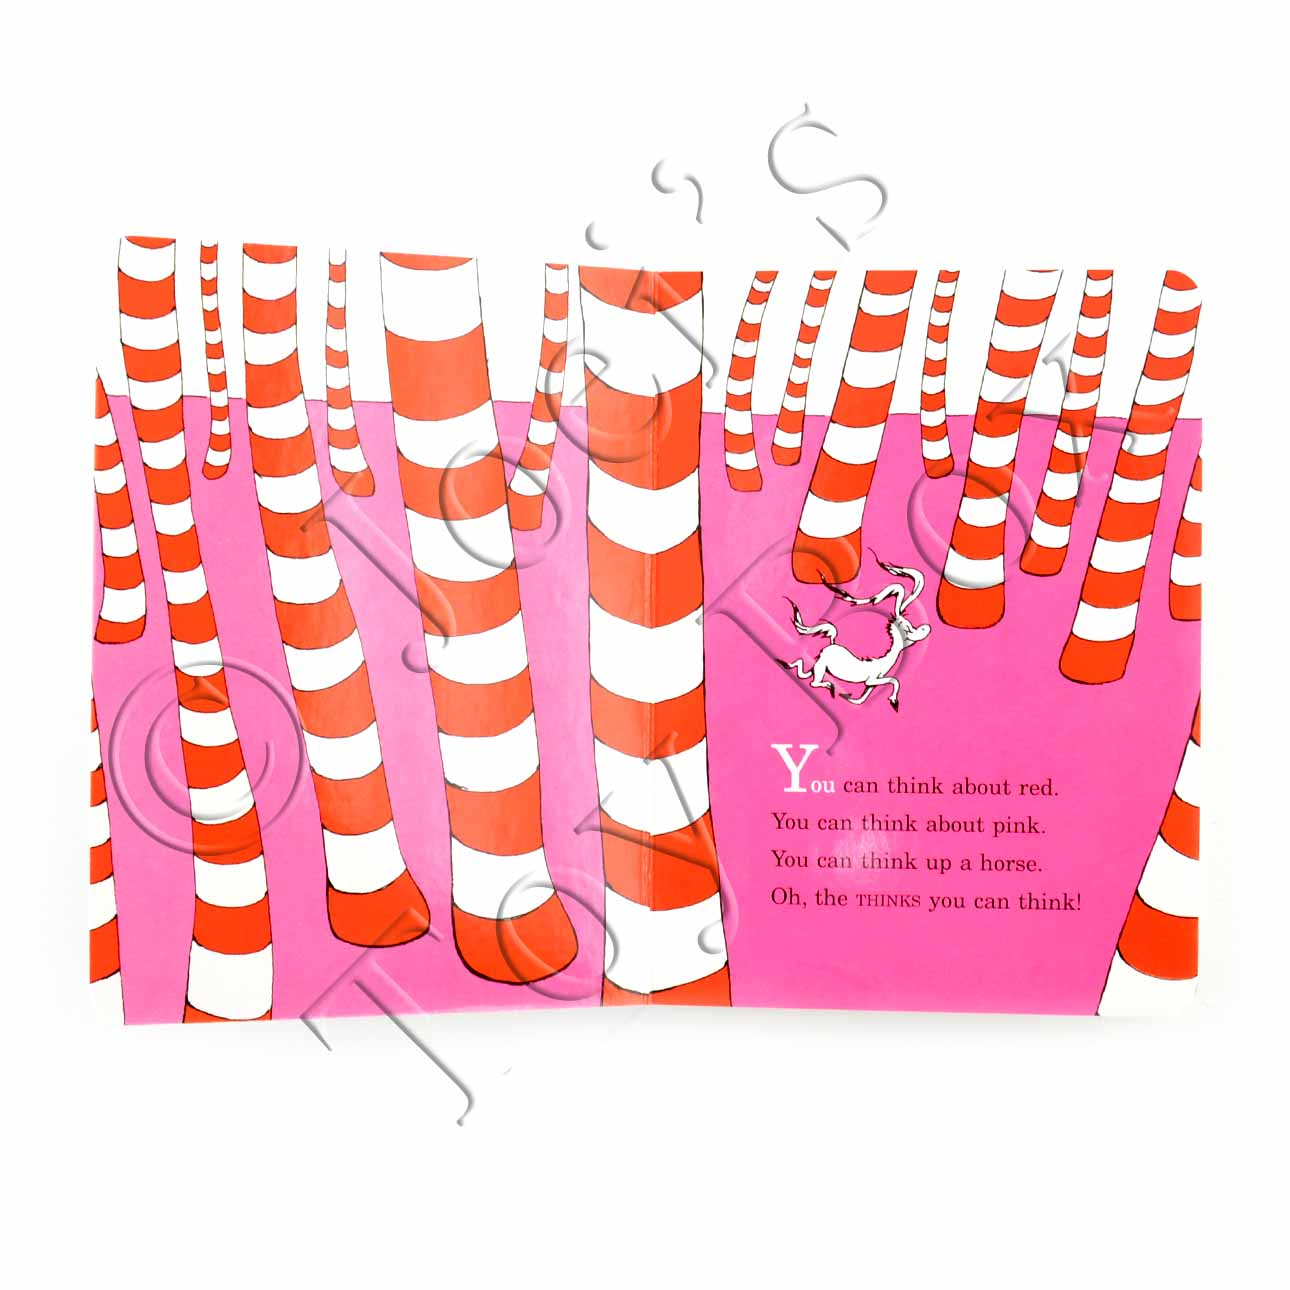 Dr Seuss Quotes Oh The Thinks You Can Think: Oh, The Thinks You Can Think! By Dr. Seuss Board Book